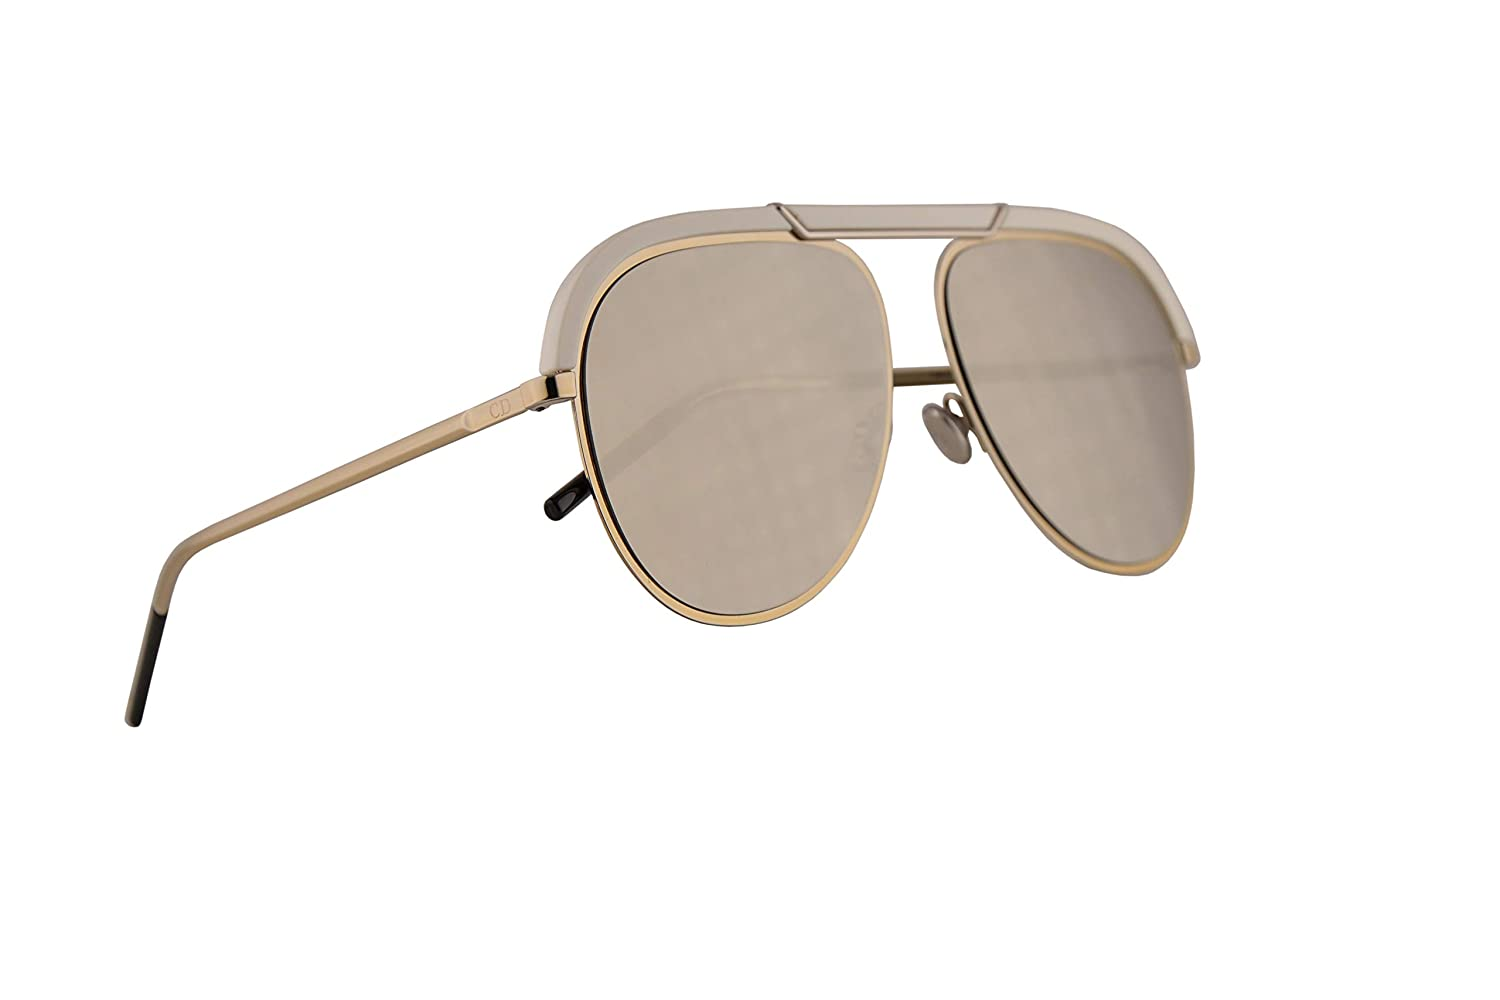 Amazon.com: Christian Dior DiorDesertic Sunglasses Gold ...